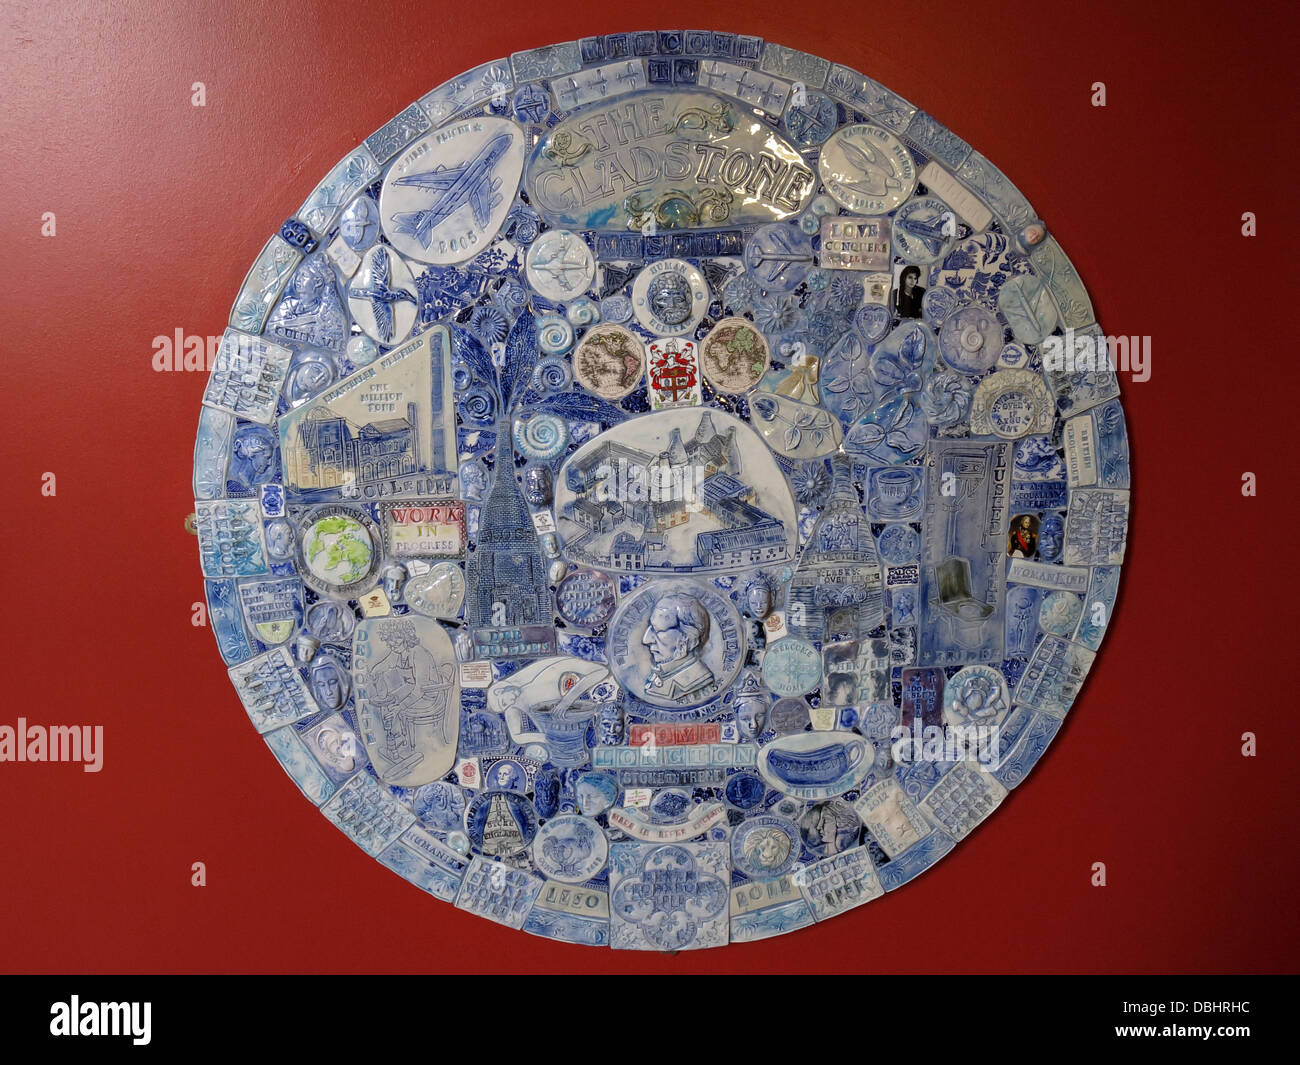 Circular pottery mosaic from Longton Stoke-On-Trent Great Britain showing potteries heritage at the Gladstone Pottery - Stock Image